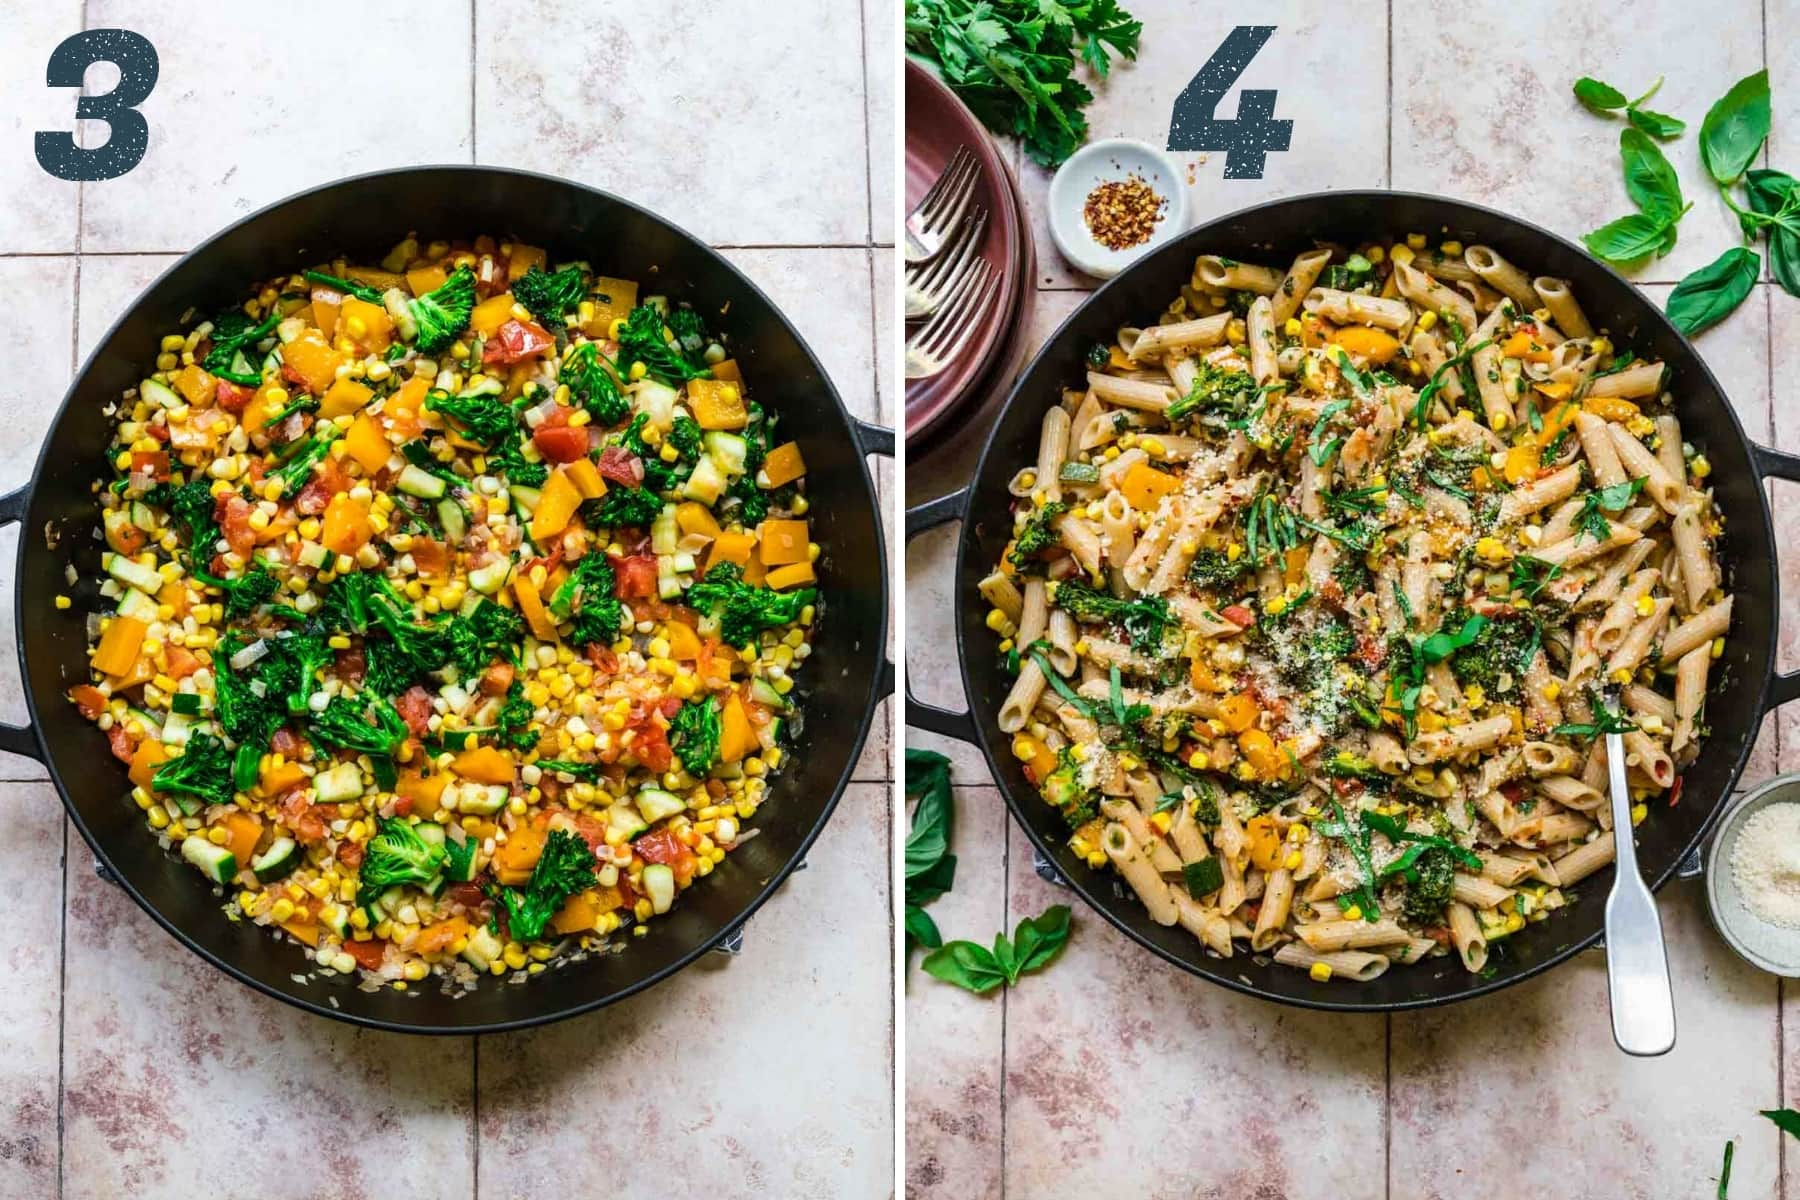 before and after adding cooked pasta to summer vegetable pasta.